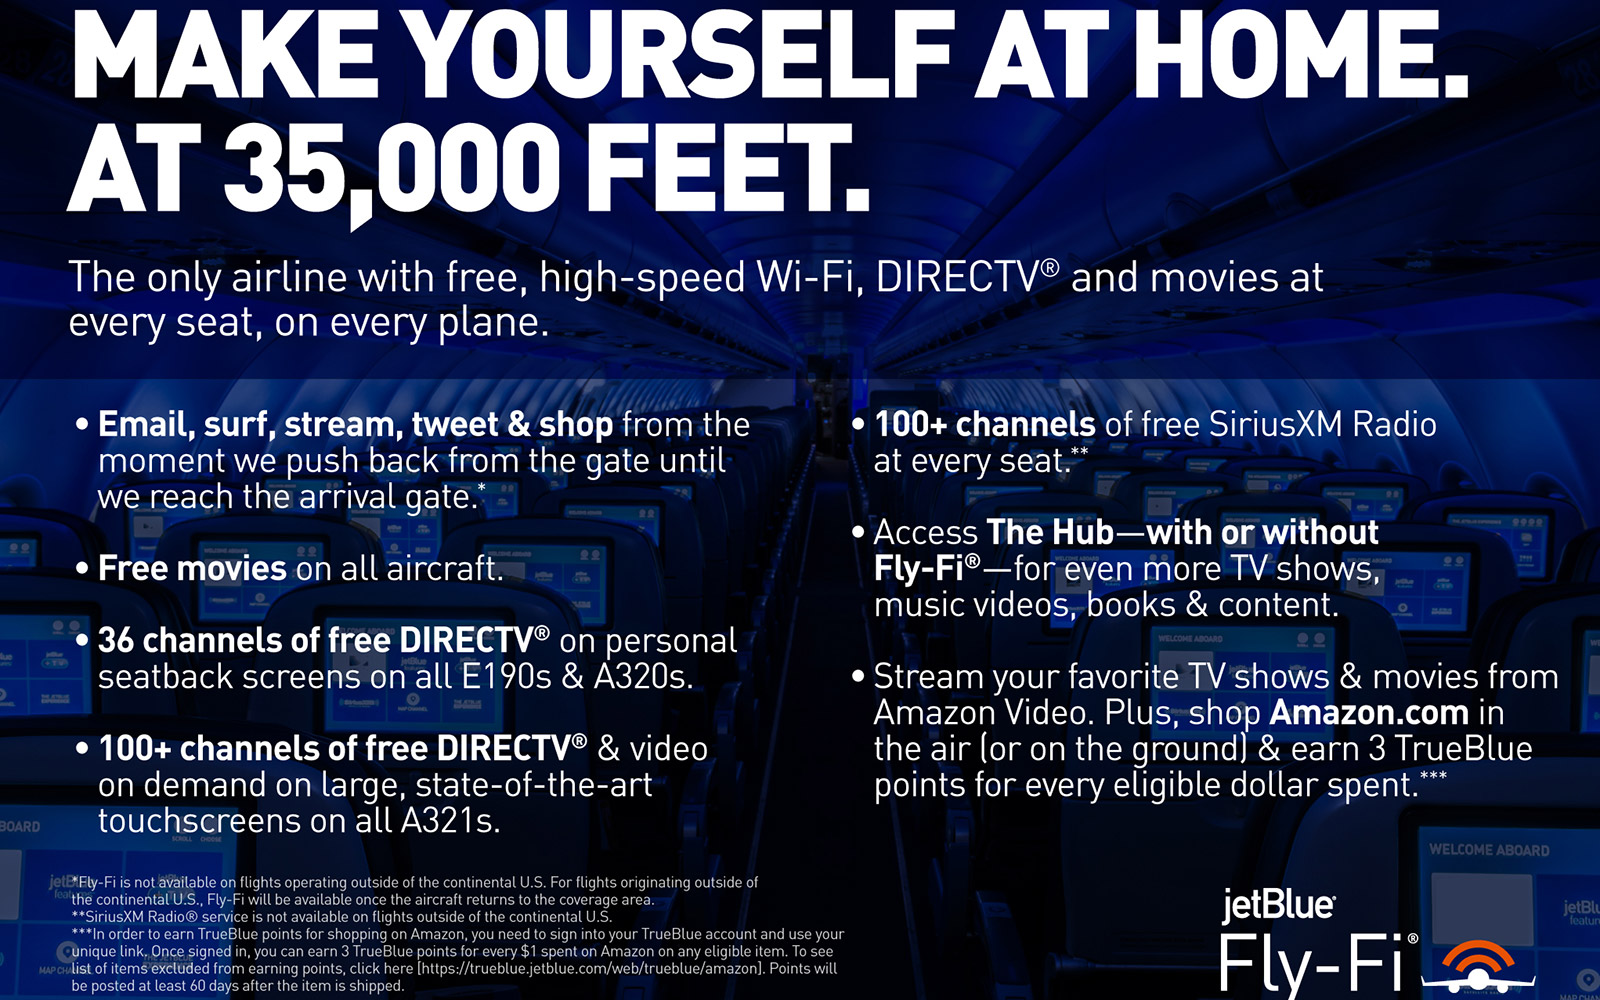 JetBlue Fly-Fi